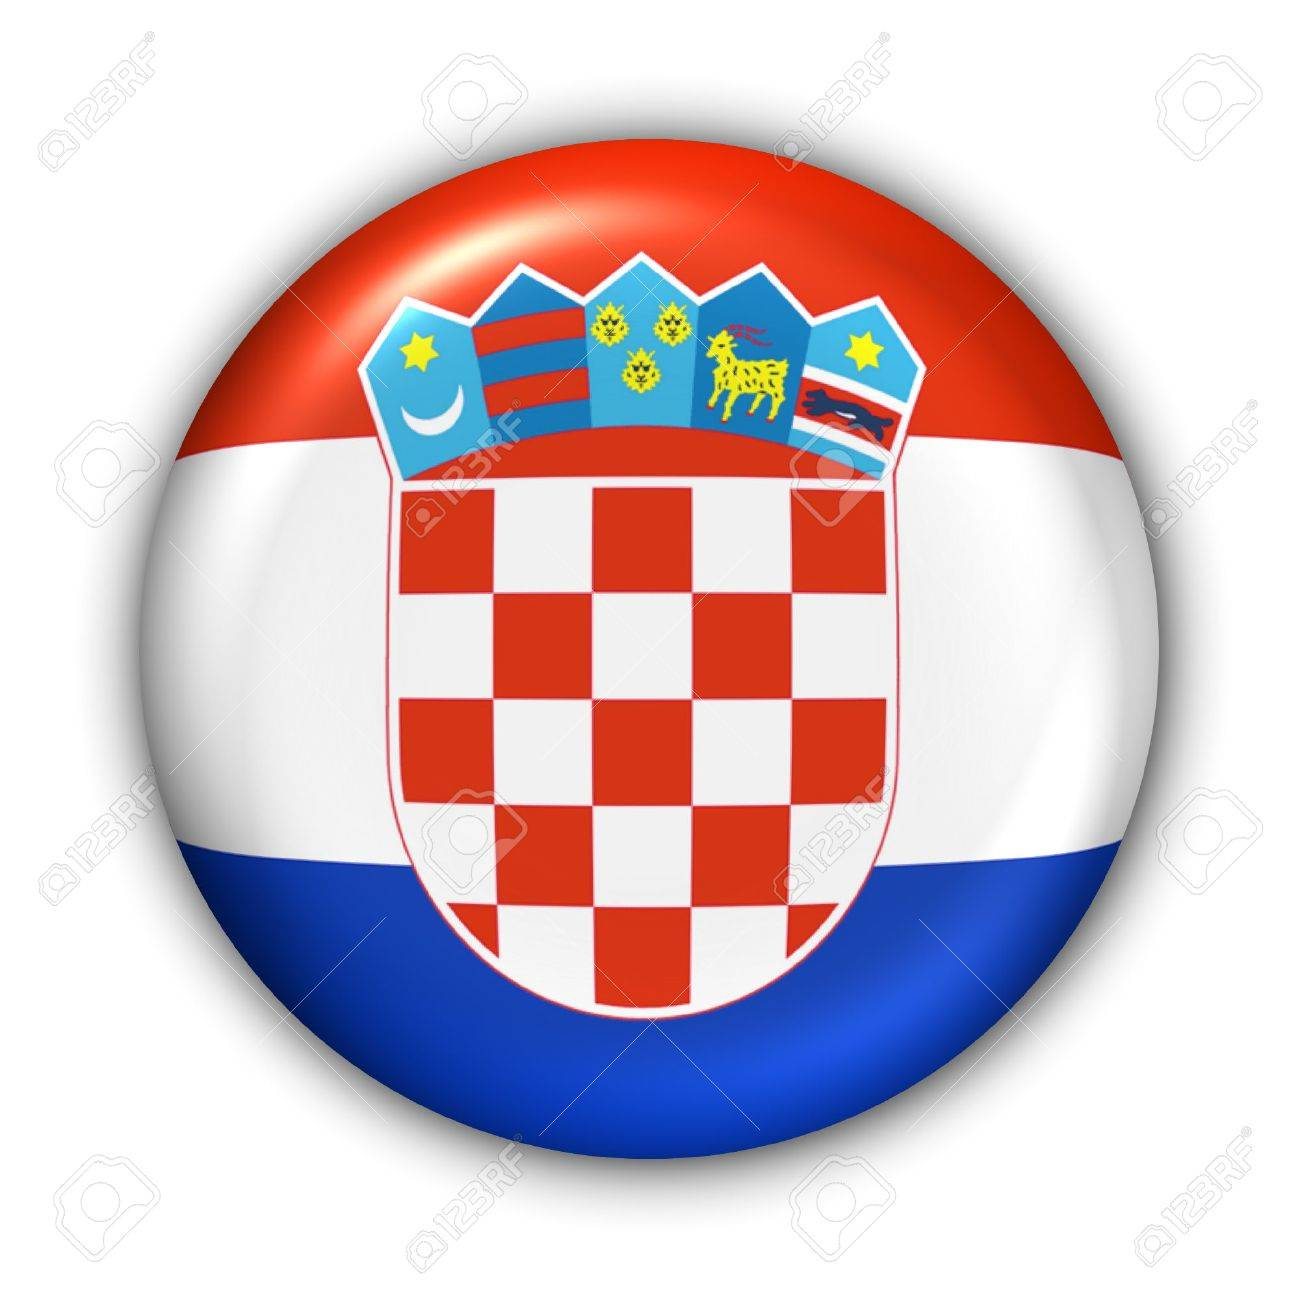 World Flag Button Series - Europe - Croatia(With Clipping Path) - 373996